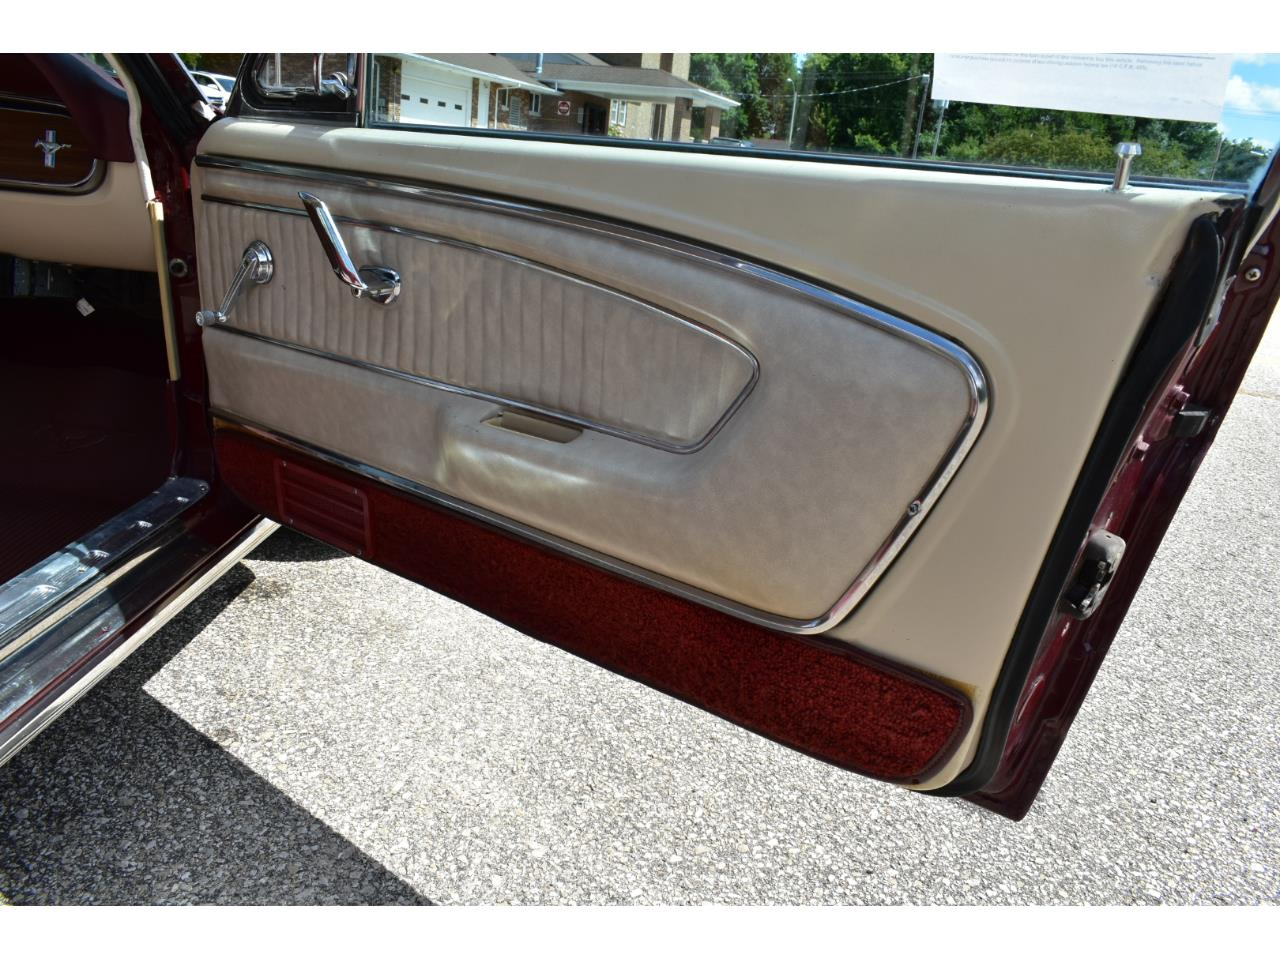 1966 Ford Mustang for sale in Greene, IA – photo 73